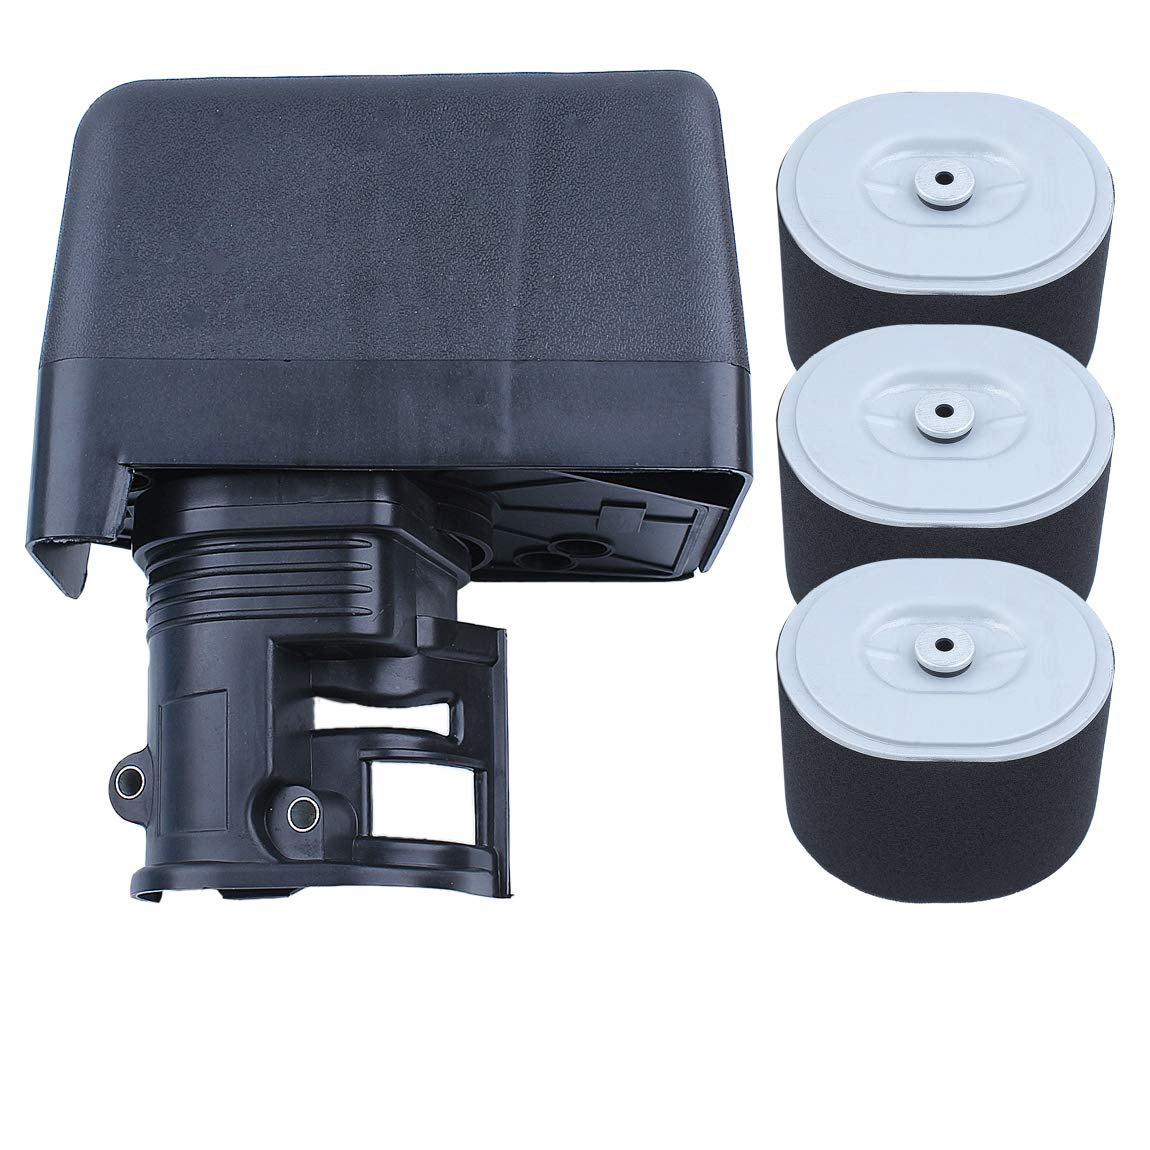 Haishine Air Filter Housing Cover Assembly w/ 3 Spare Filters Kit for Honda GX390 GX340 GX 390 340 Chinese 188F 190F Engine 5kw Generator by Haishine